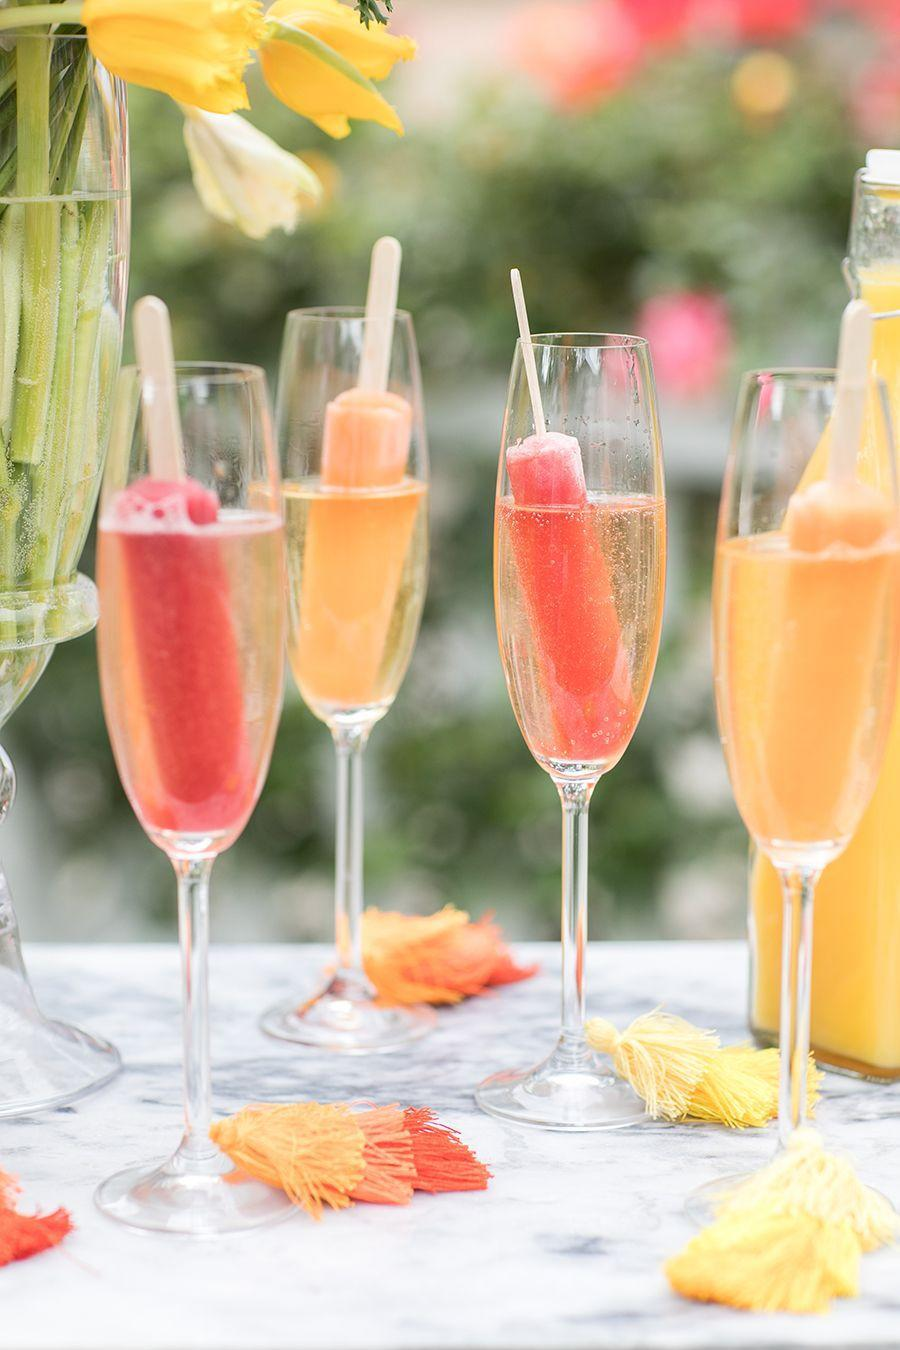 "<p>Freeze fruit juices into popsicles then stick them in champagne flutes. Just when you thought bubbly couldn't get any better. </p><p>See more at <a href=""https://sugarandcharm.com/2018/05/a-college-graduation-bubbly-bar.html?section-2"" rel=""nofollow noopener"" target=""_blank"" data-ylk=""slk:Sugar and Charm"" class=""link rapid-noclick-resp"">Sugar and Charm</a>.</p>"